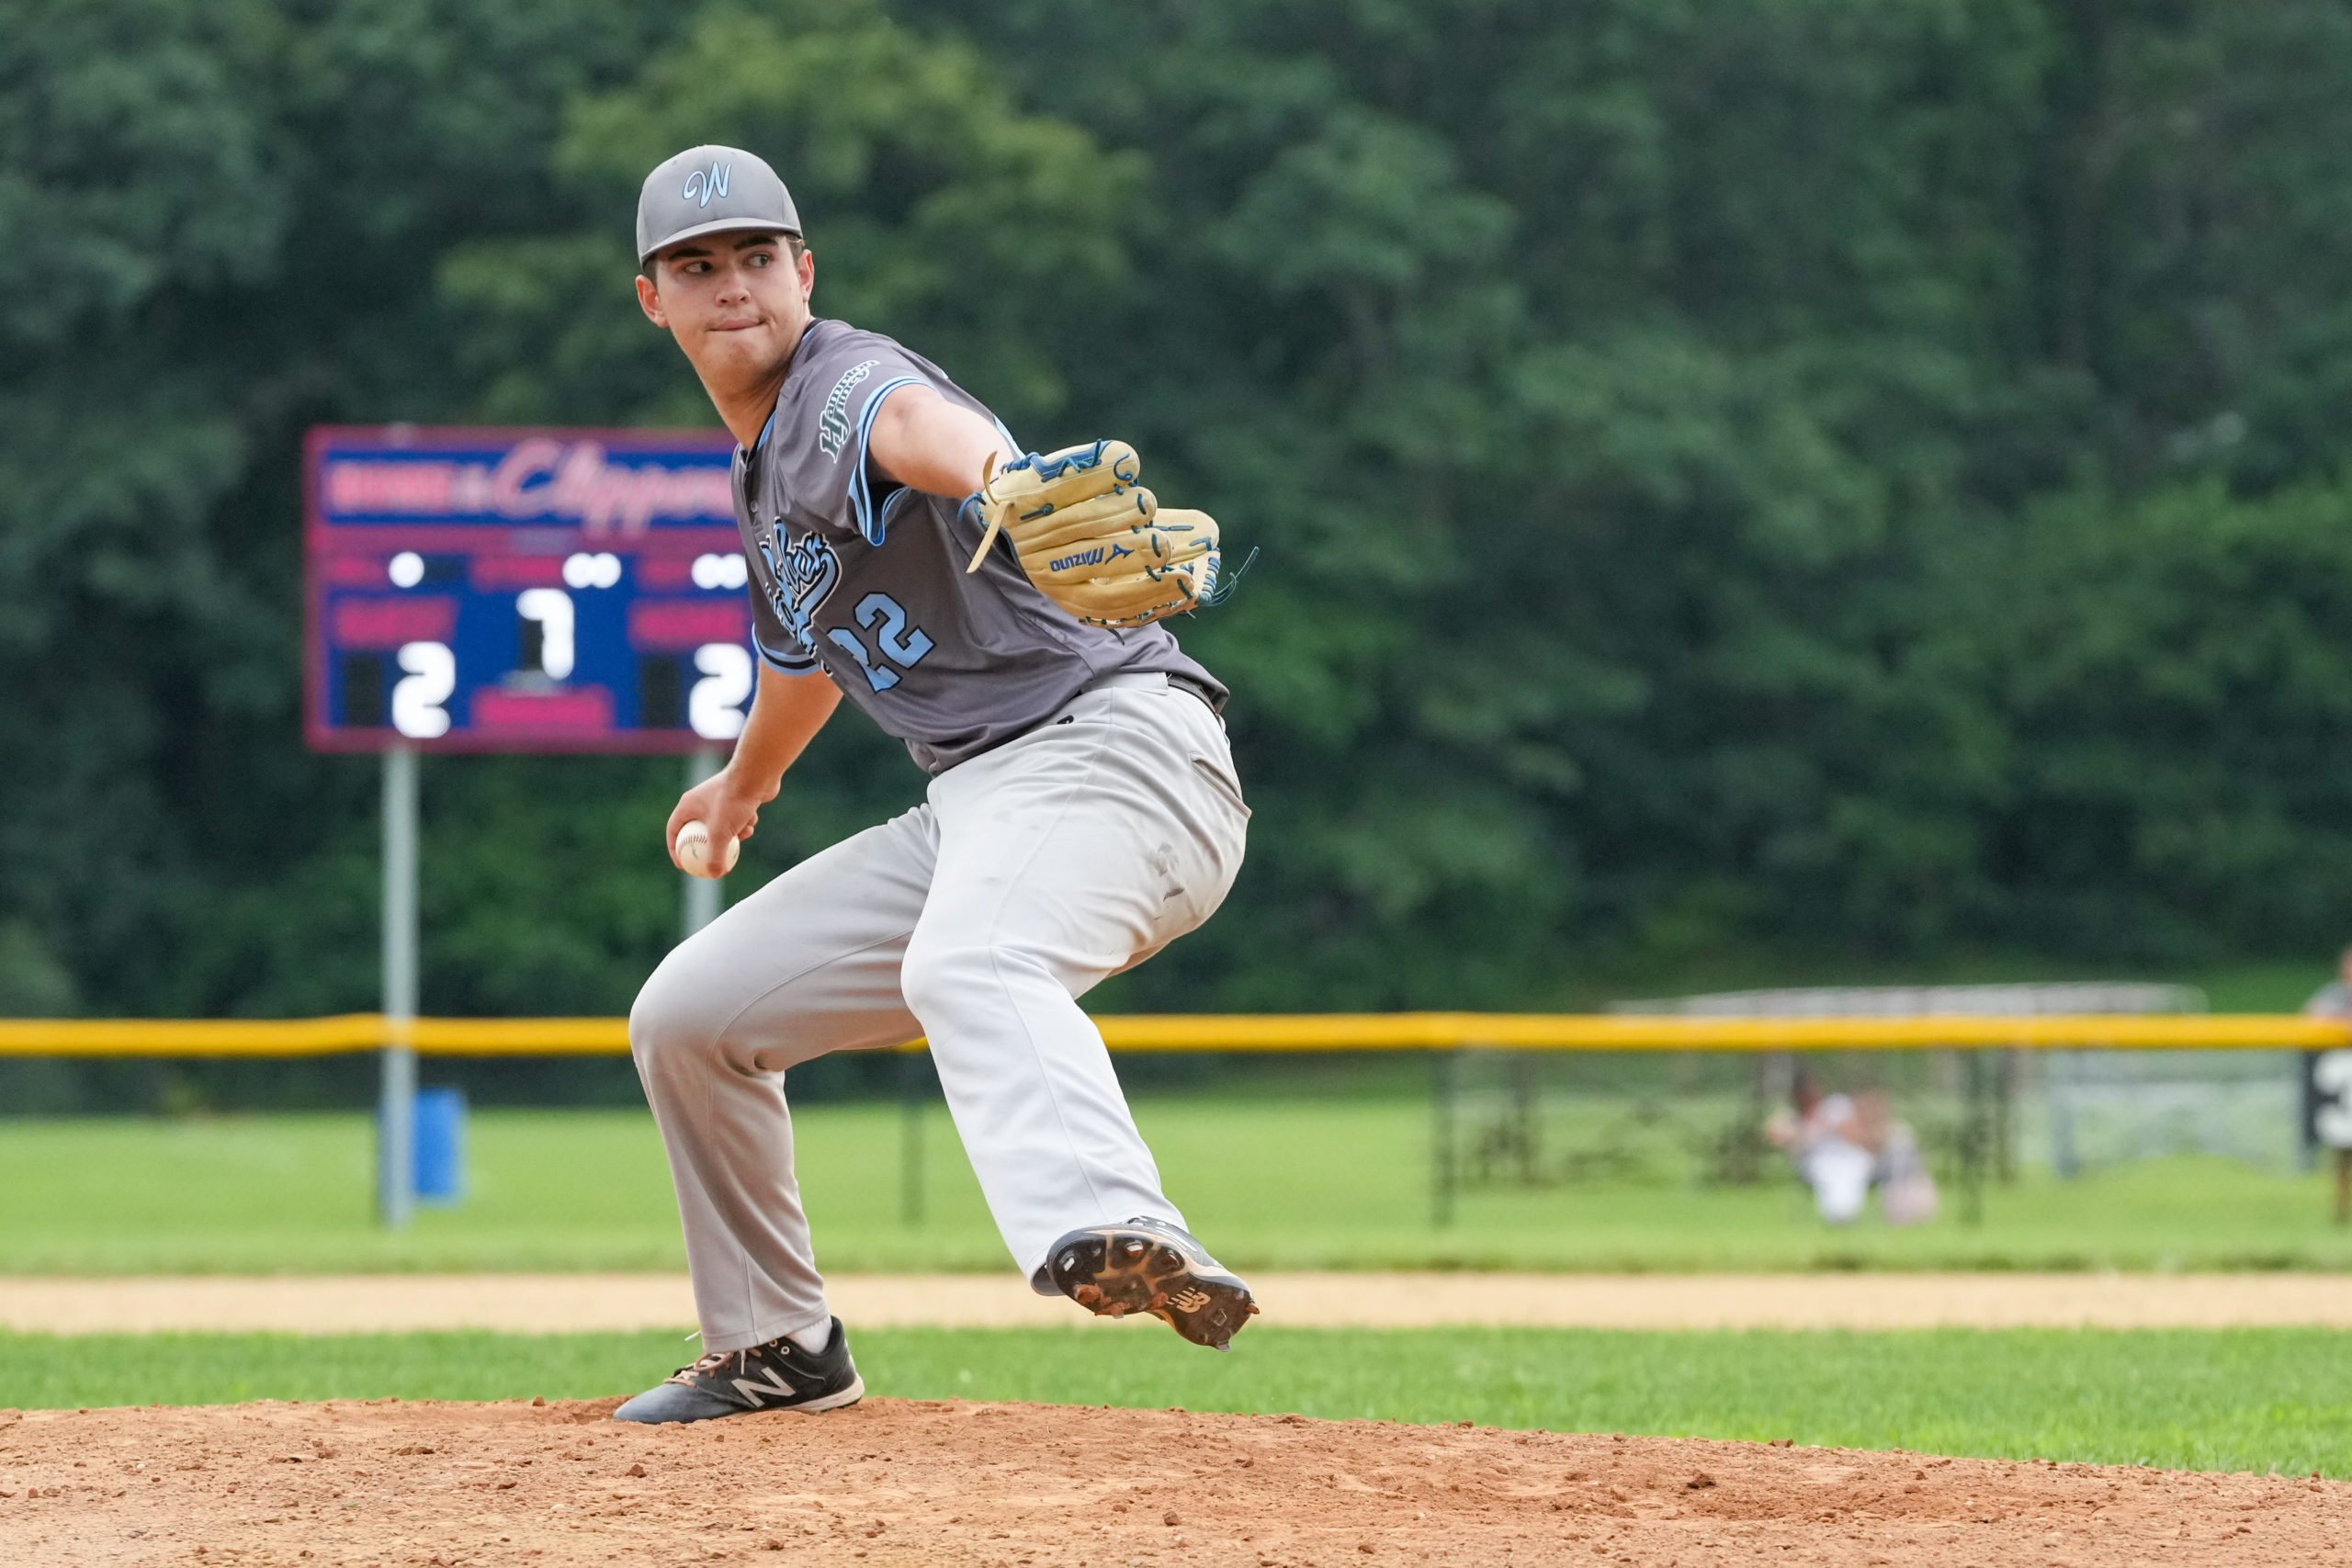 Tyler Cortland pitched five scoreless innings of relief to earn the win for the Whalers on Thursday.